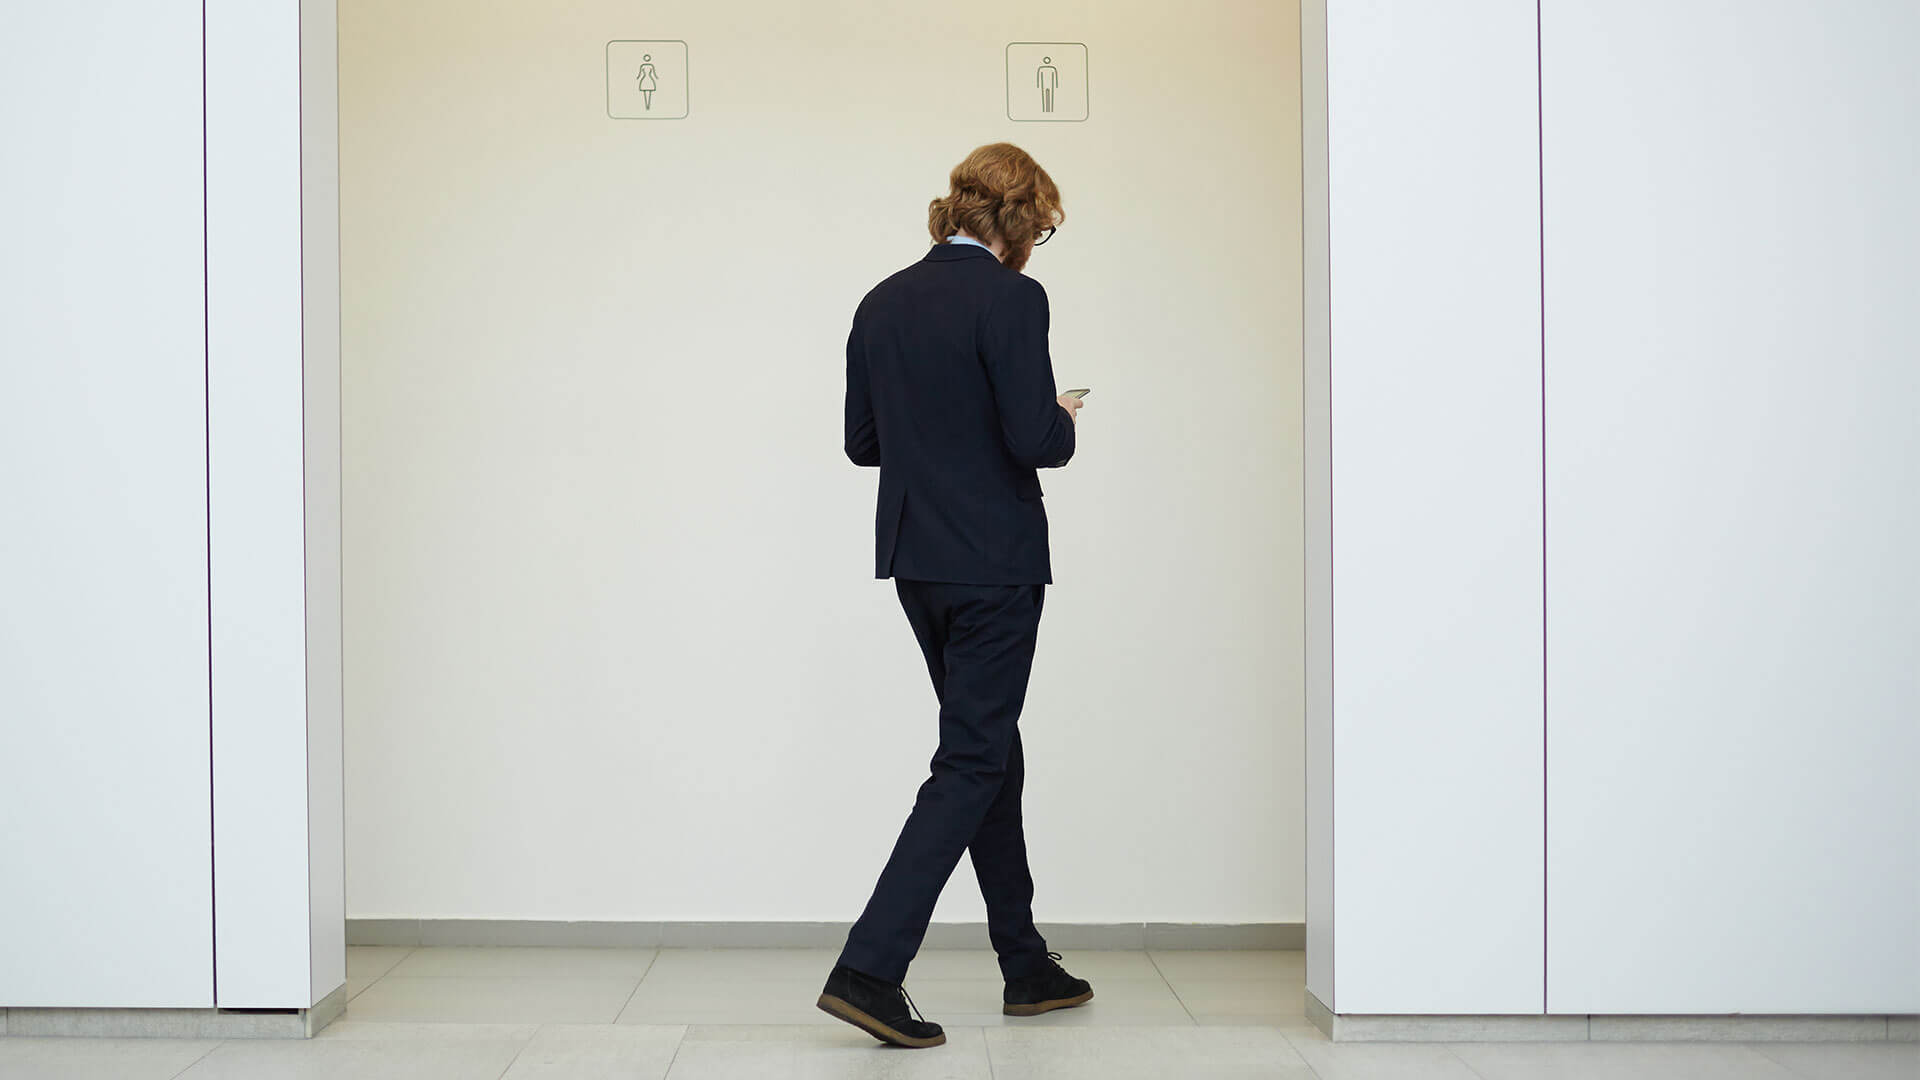 A man, walking with his head down, looking at his phone, into the mens restroom.